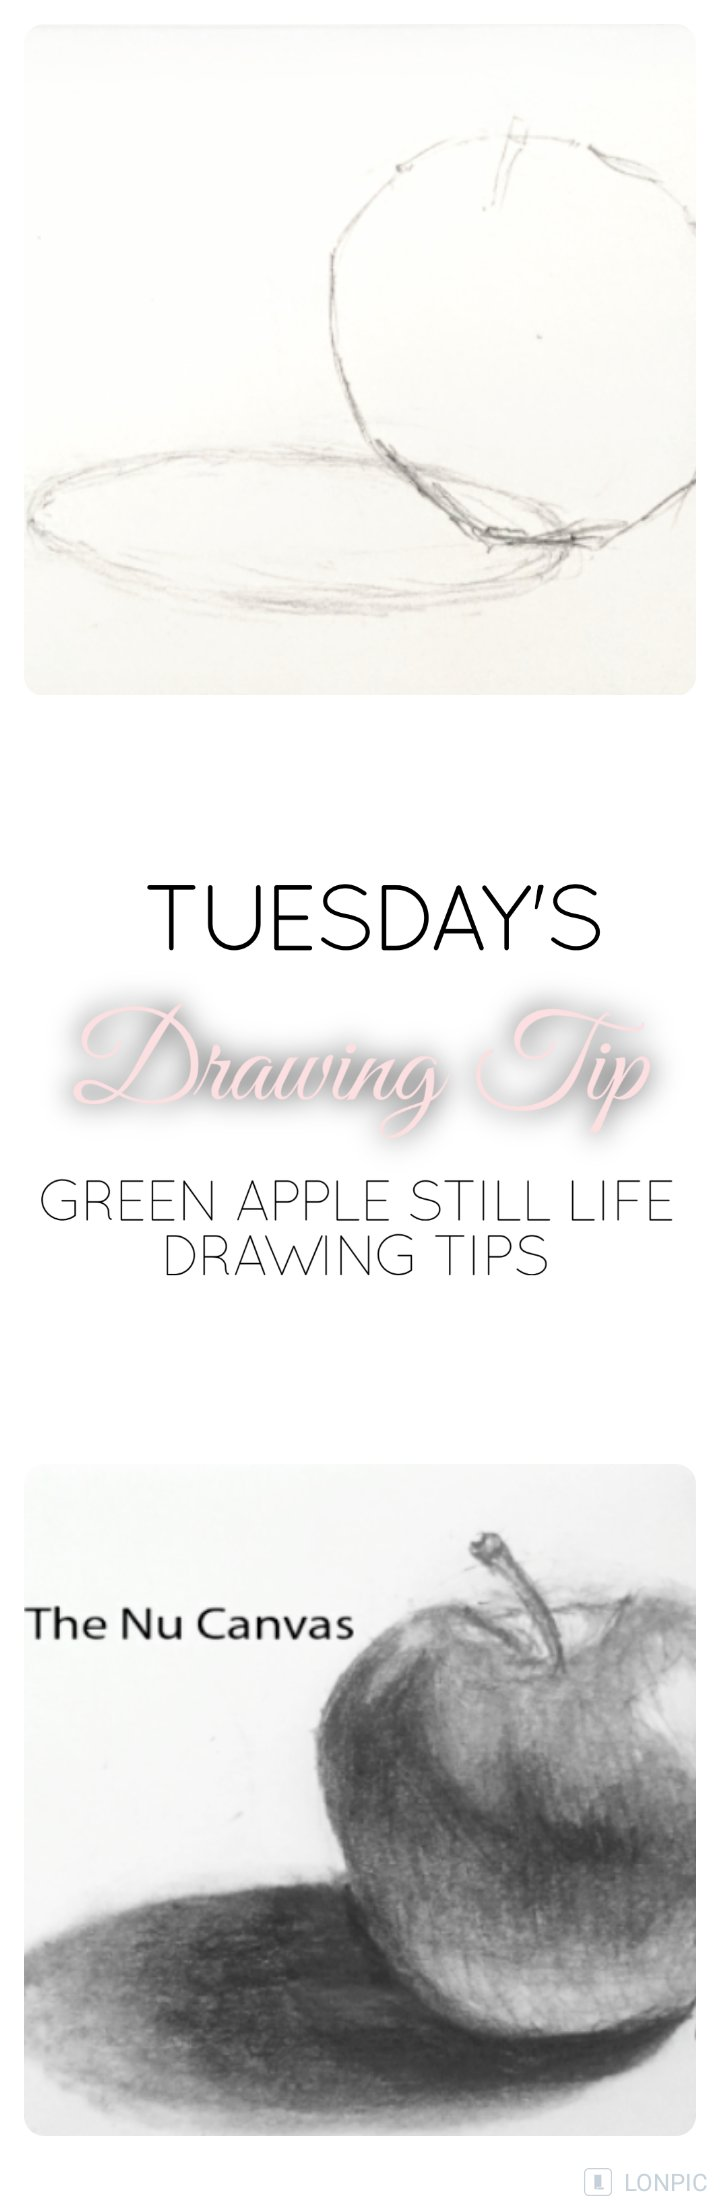 Tuesday's Tip – I